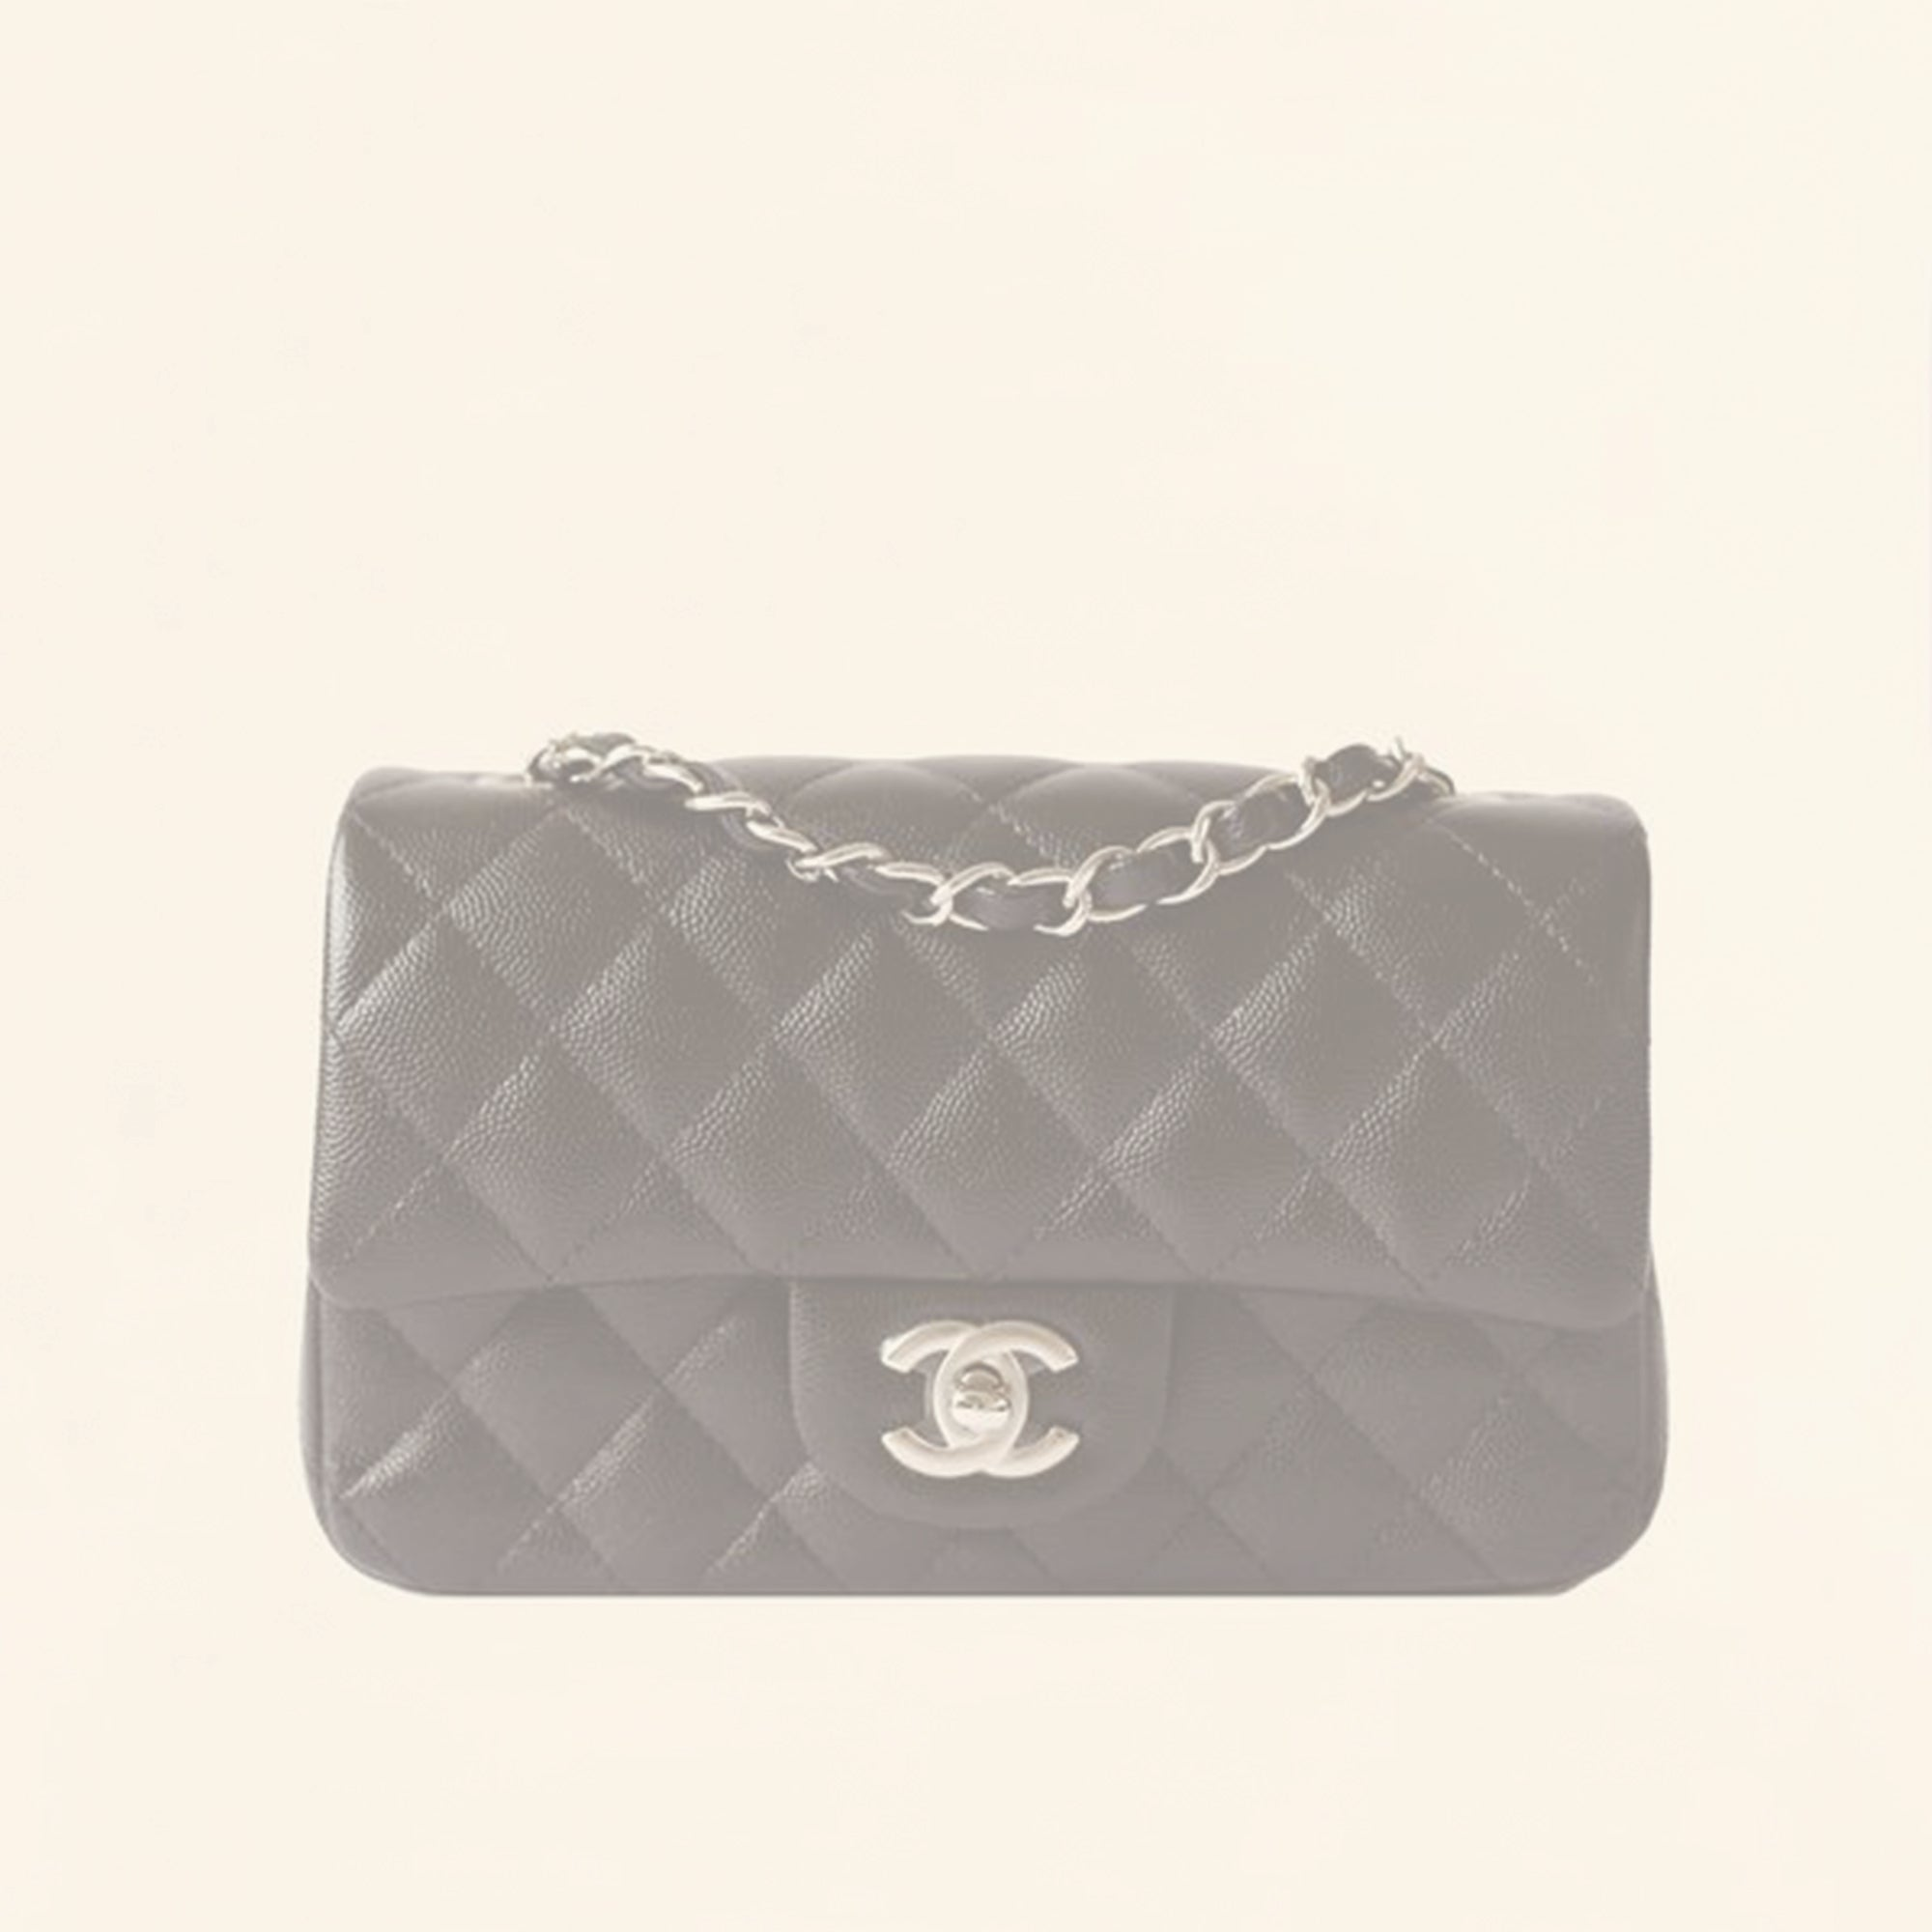 ec0418983500 Chanel | Caviar Mini Rectangular Flap Bag | Black with Silver Hardware -  The-Collectory